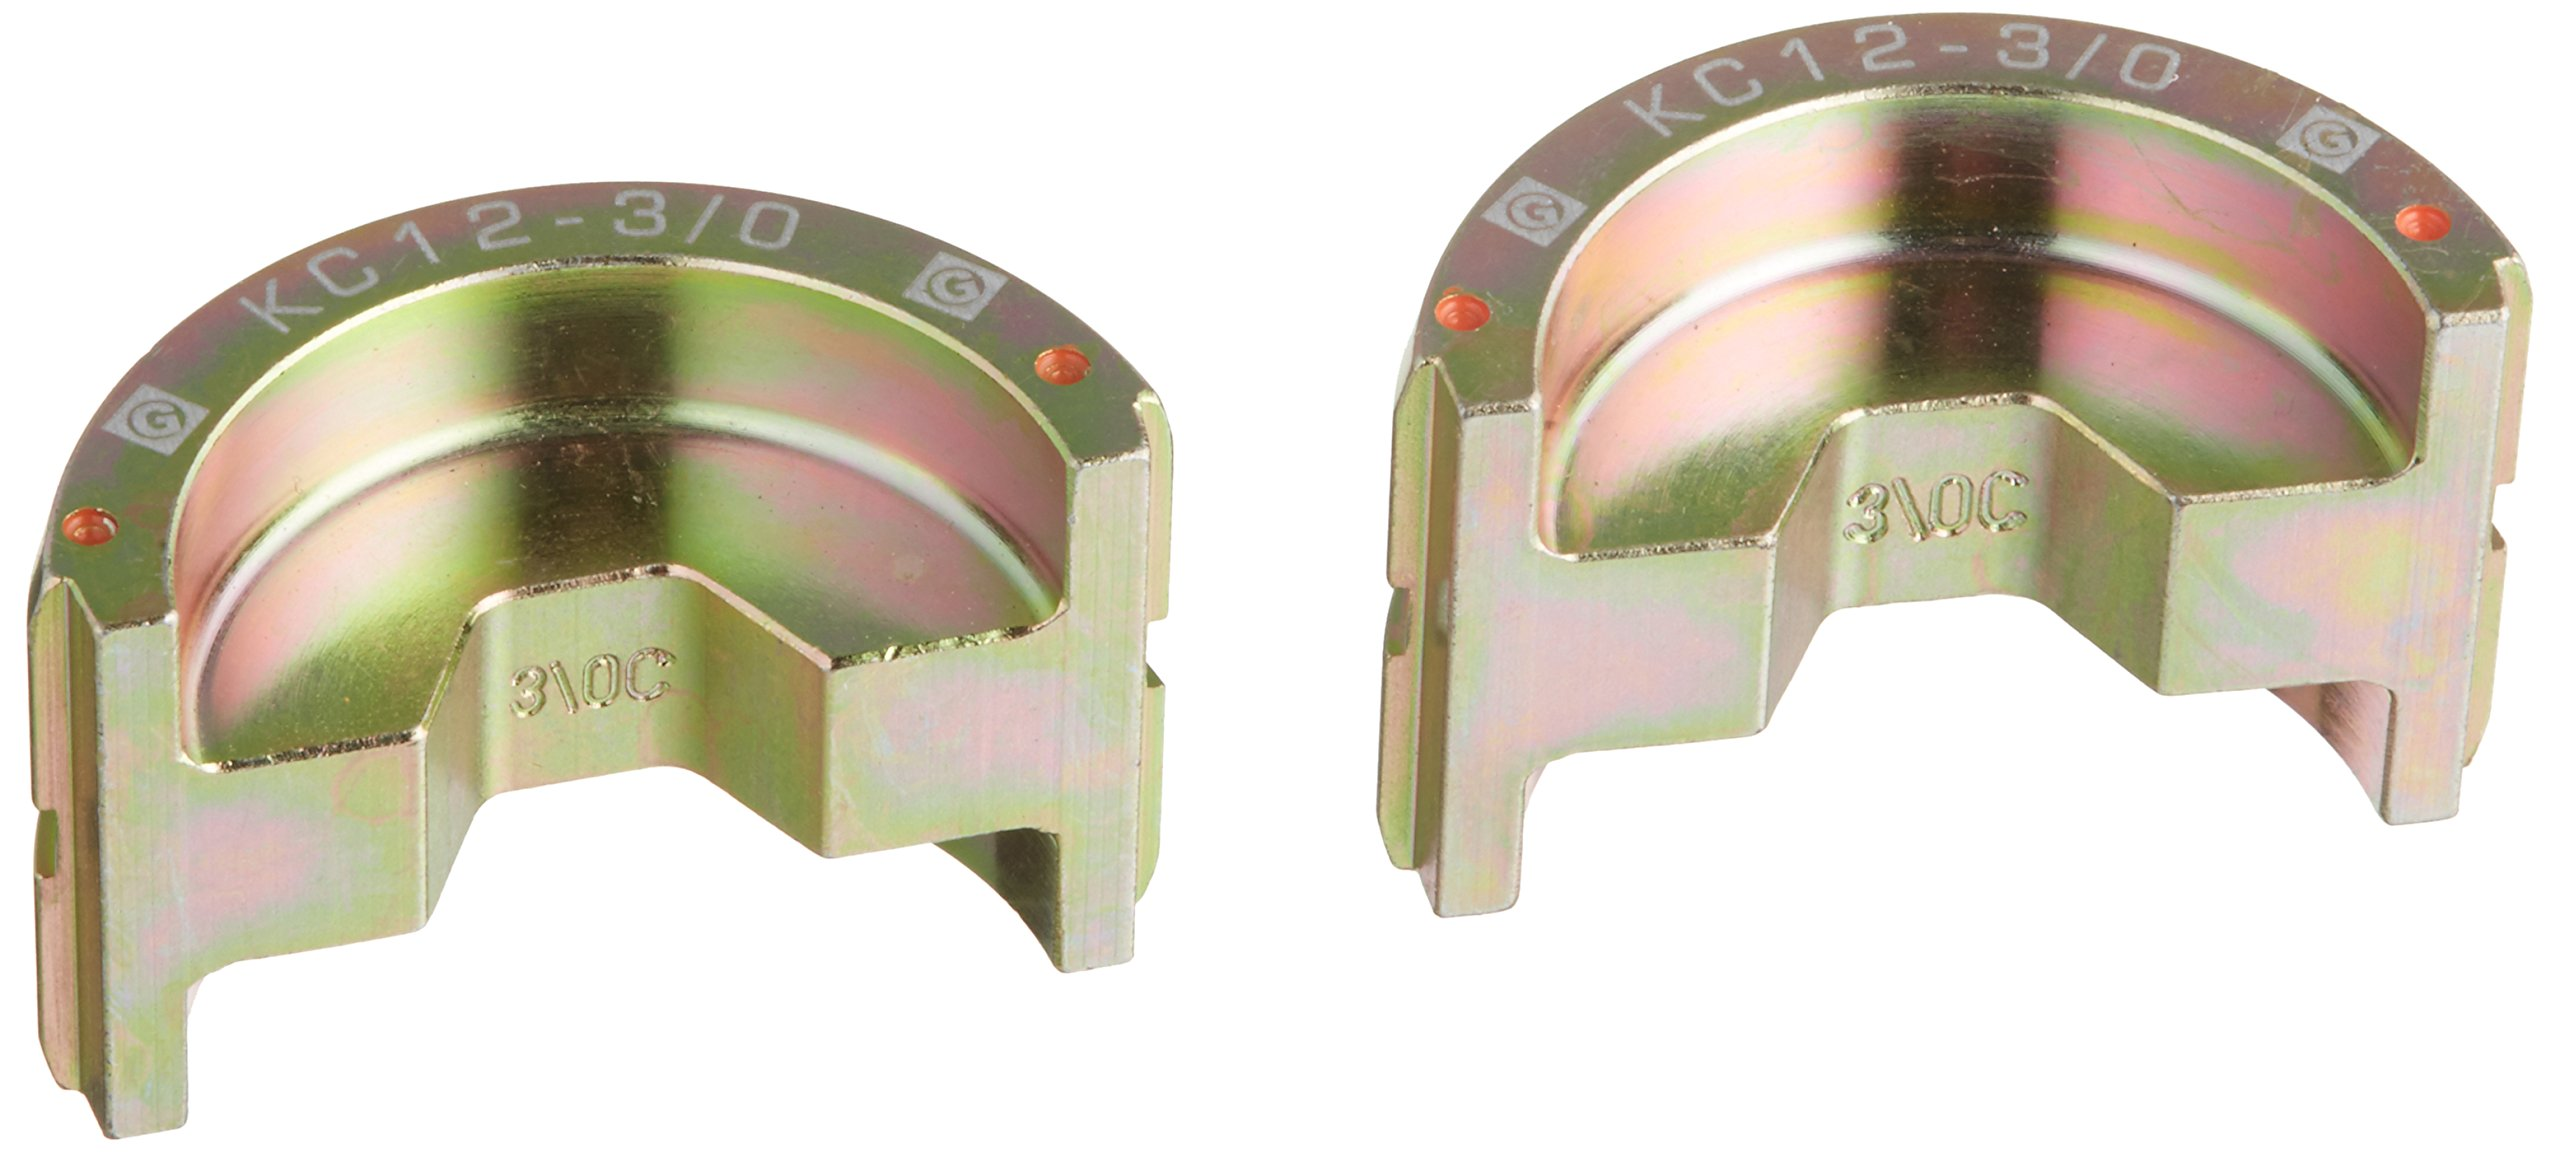 Greenlee KC12-3/0 Crimping Die for Greenlee 12-Ton Tools, Copper, 3/0 AWG